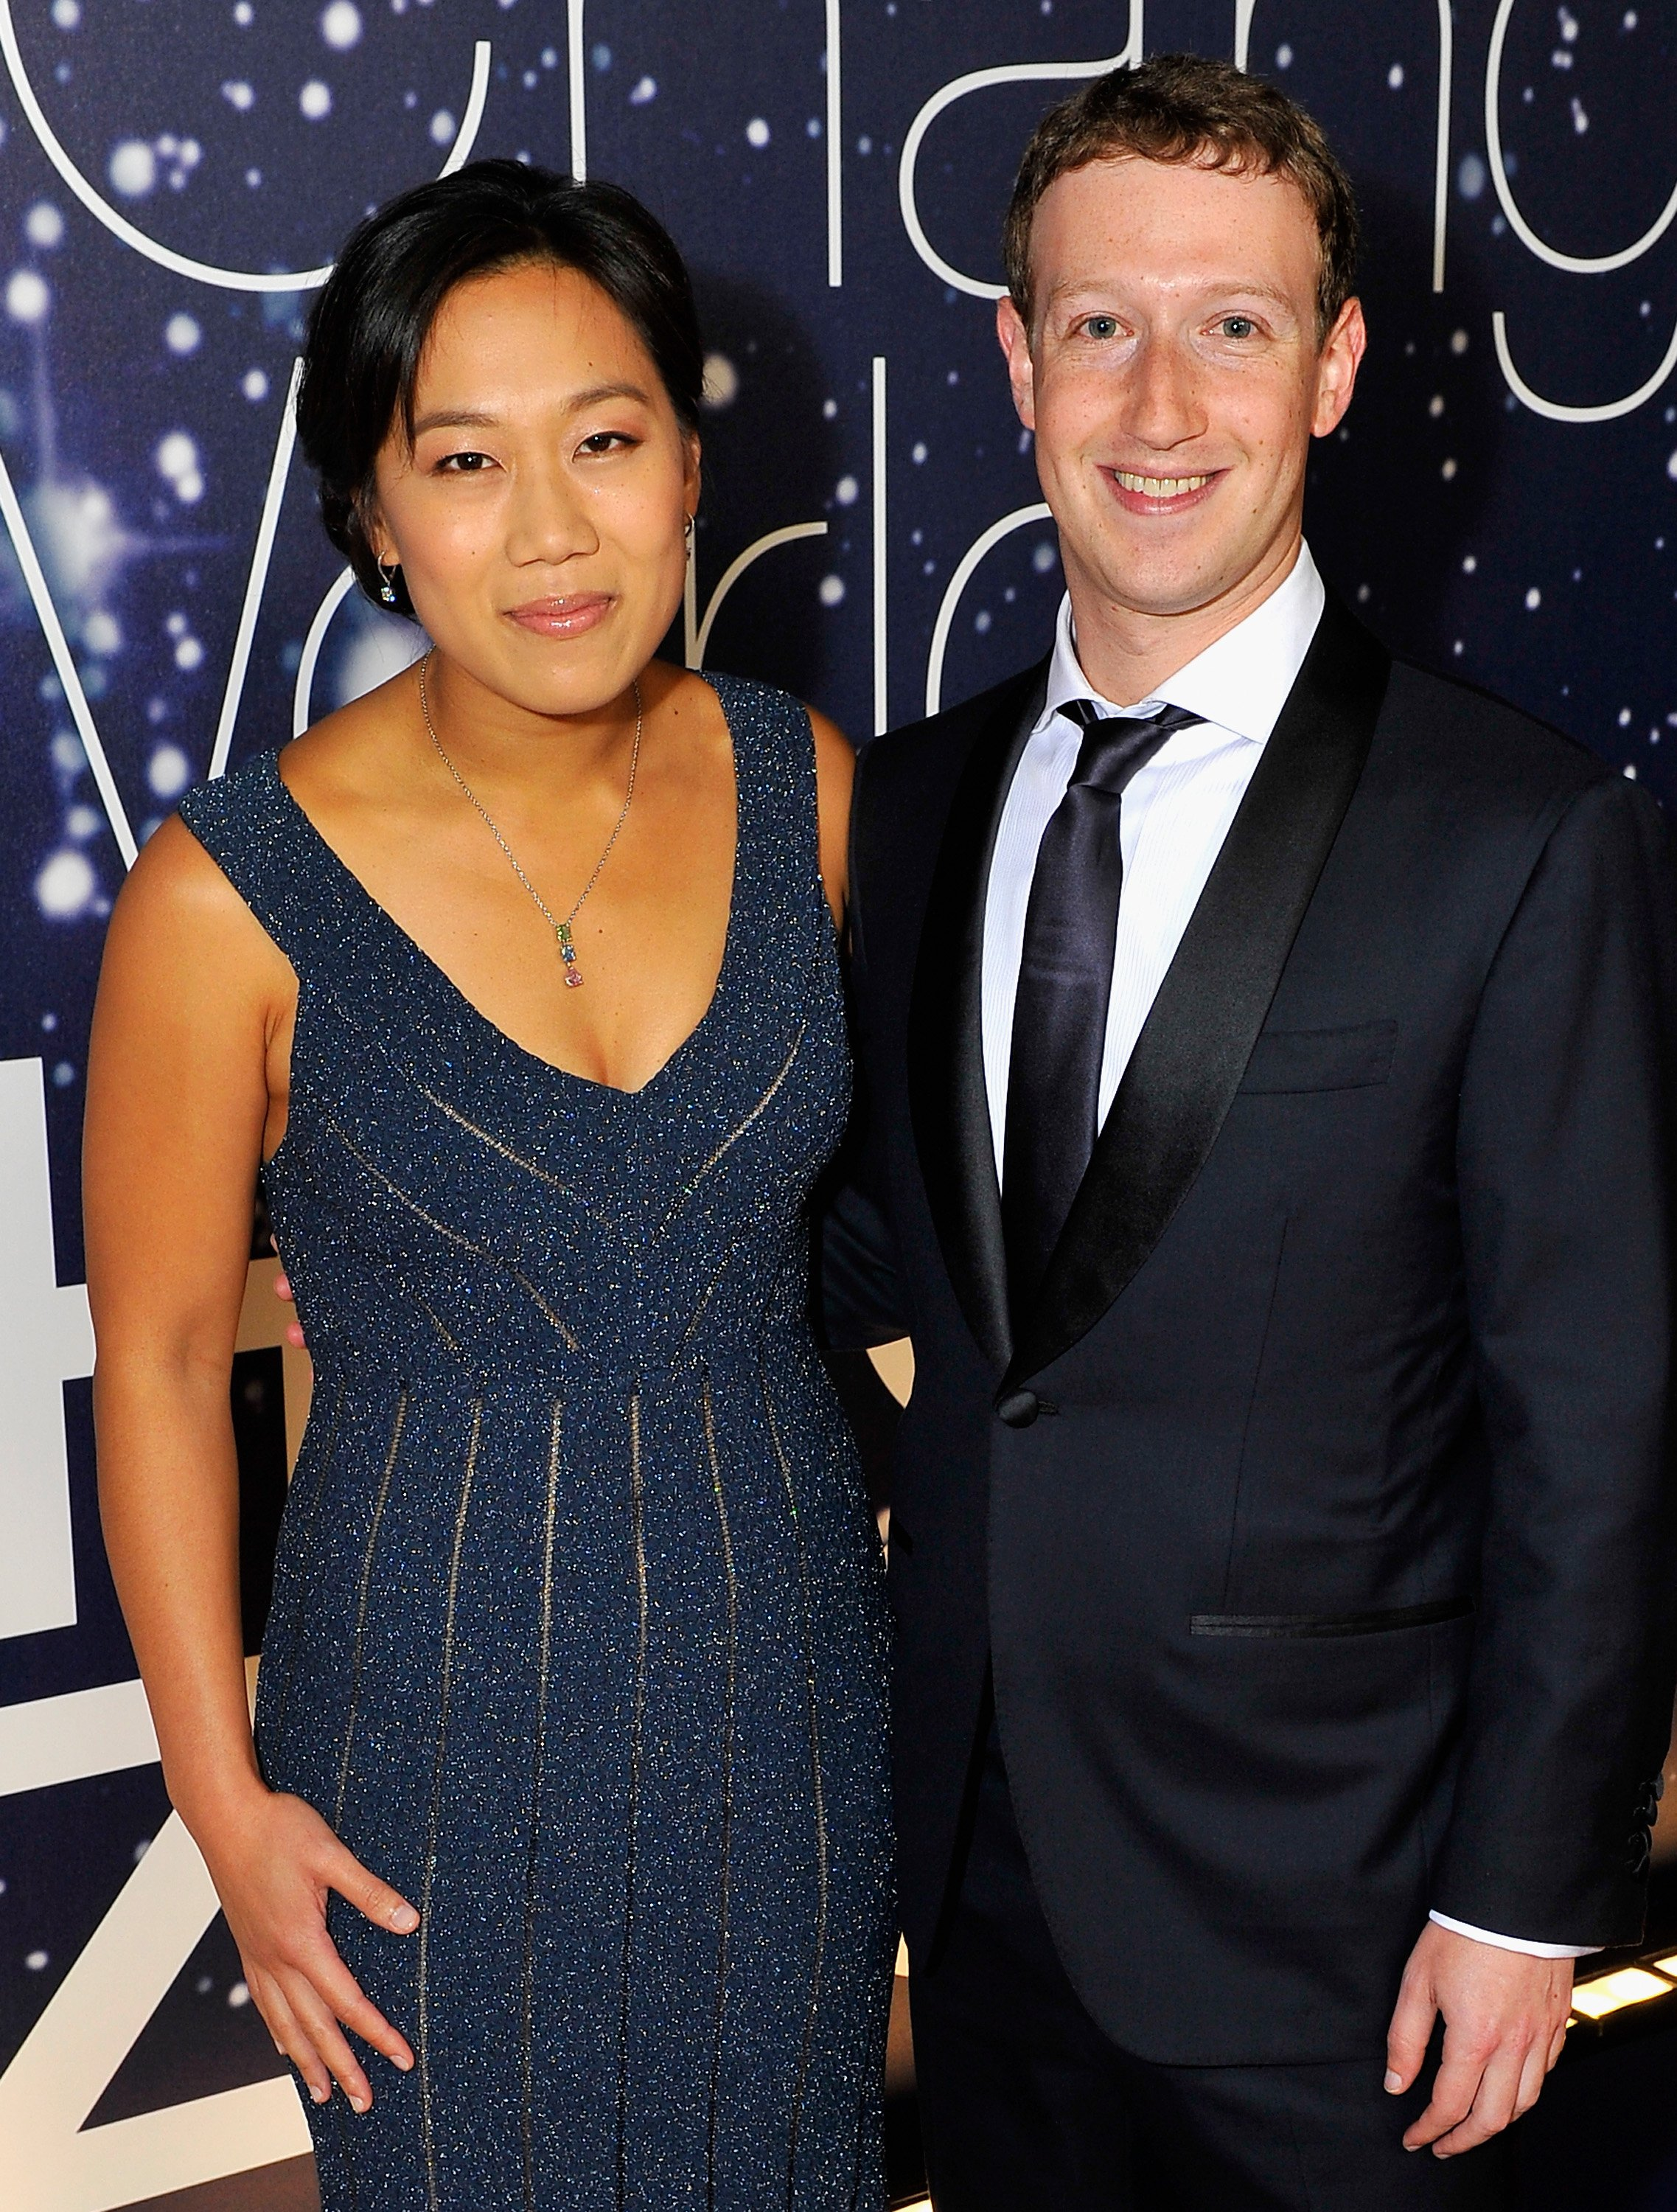 Priscilla Chan and Mark Zuckerberg attend the Breakthrough Prize Awards Ceremony Hosted By Seth MacFarlane at NASA Ames Research Center on November 9, 2014 | Photo: GettyImages